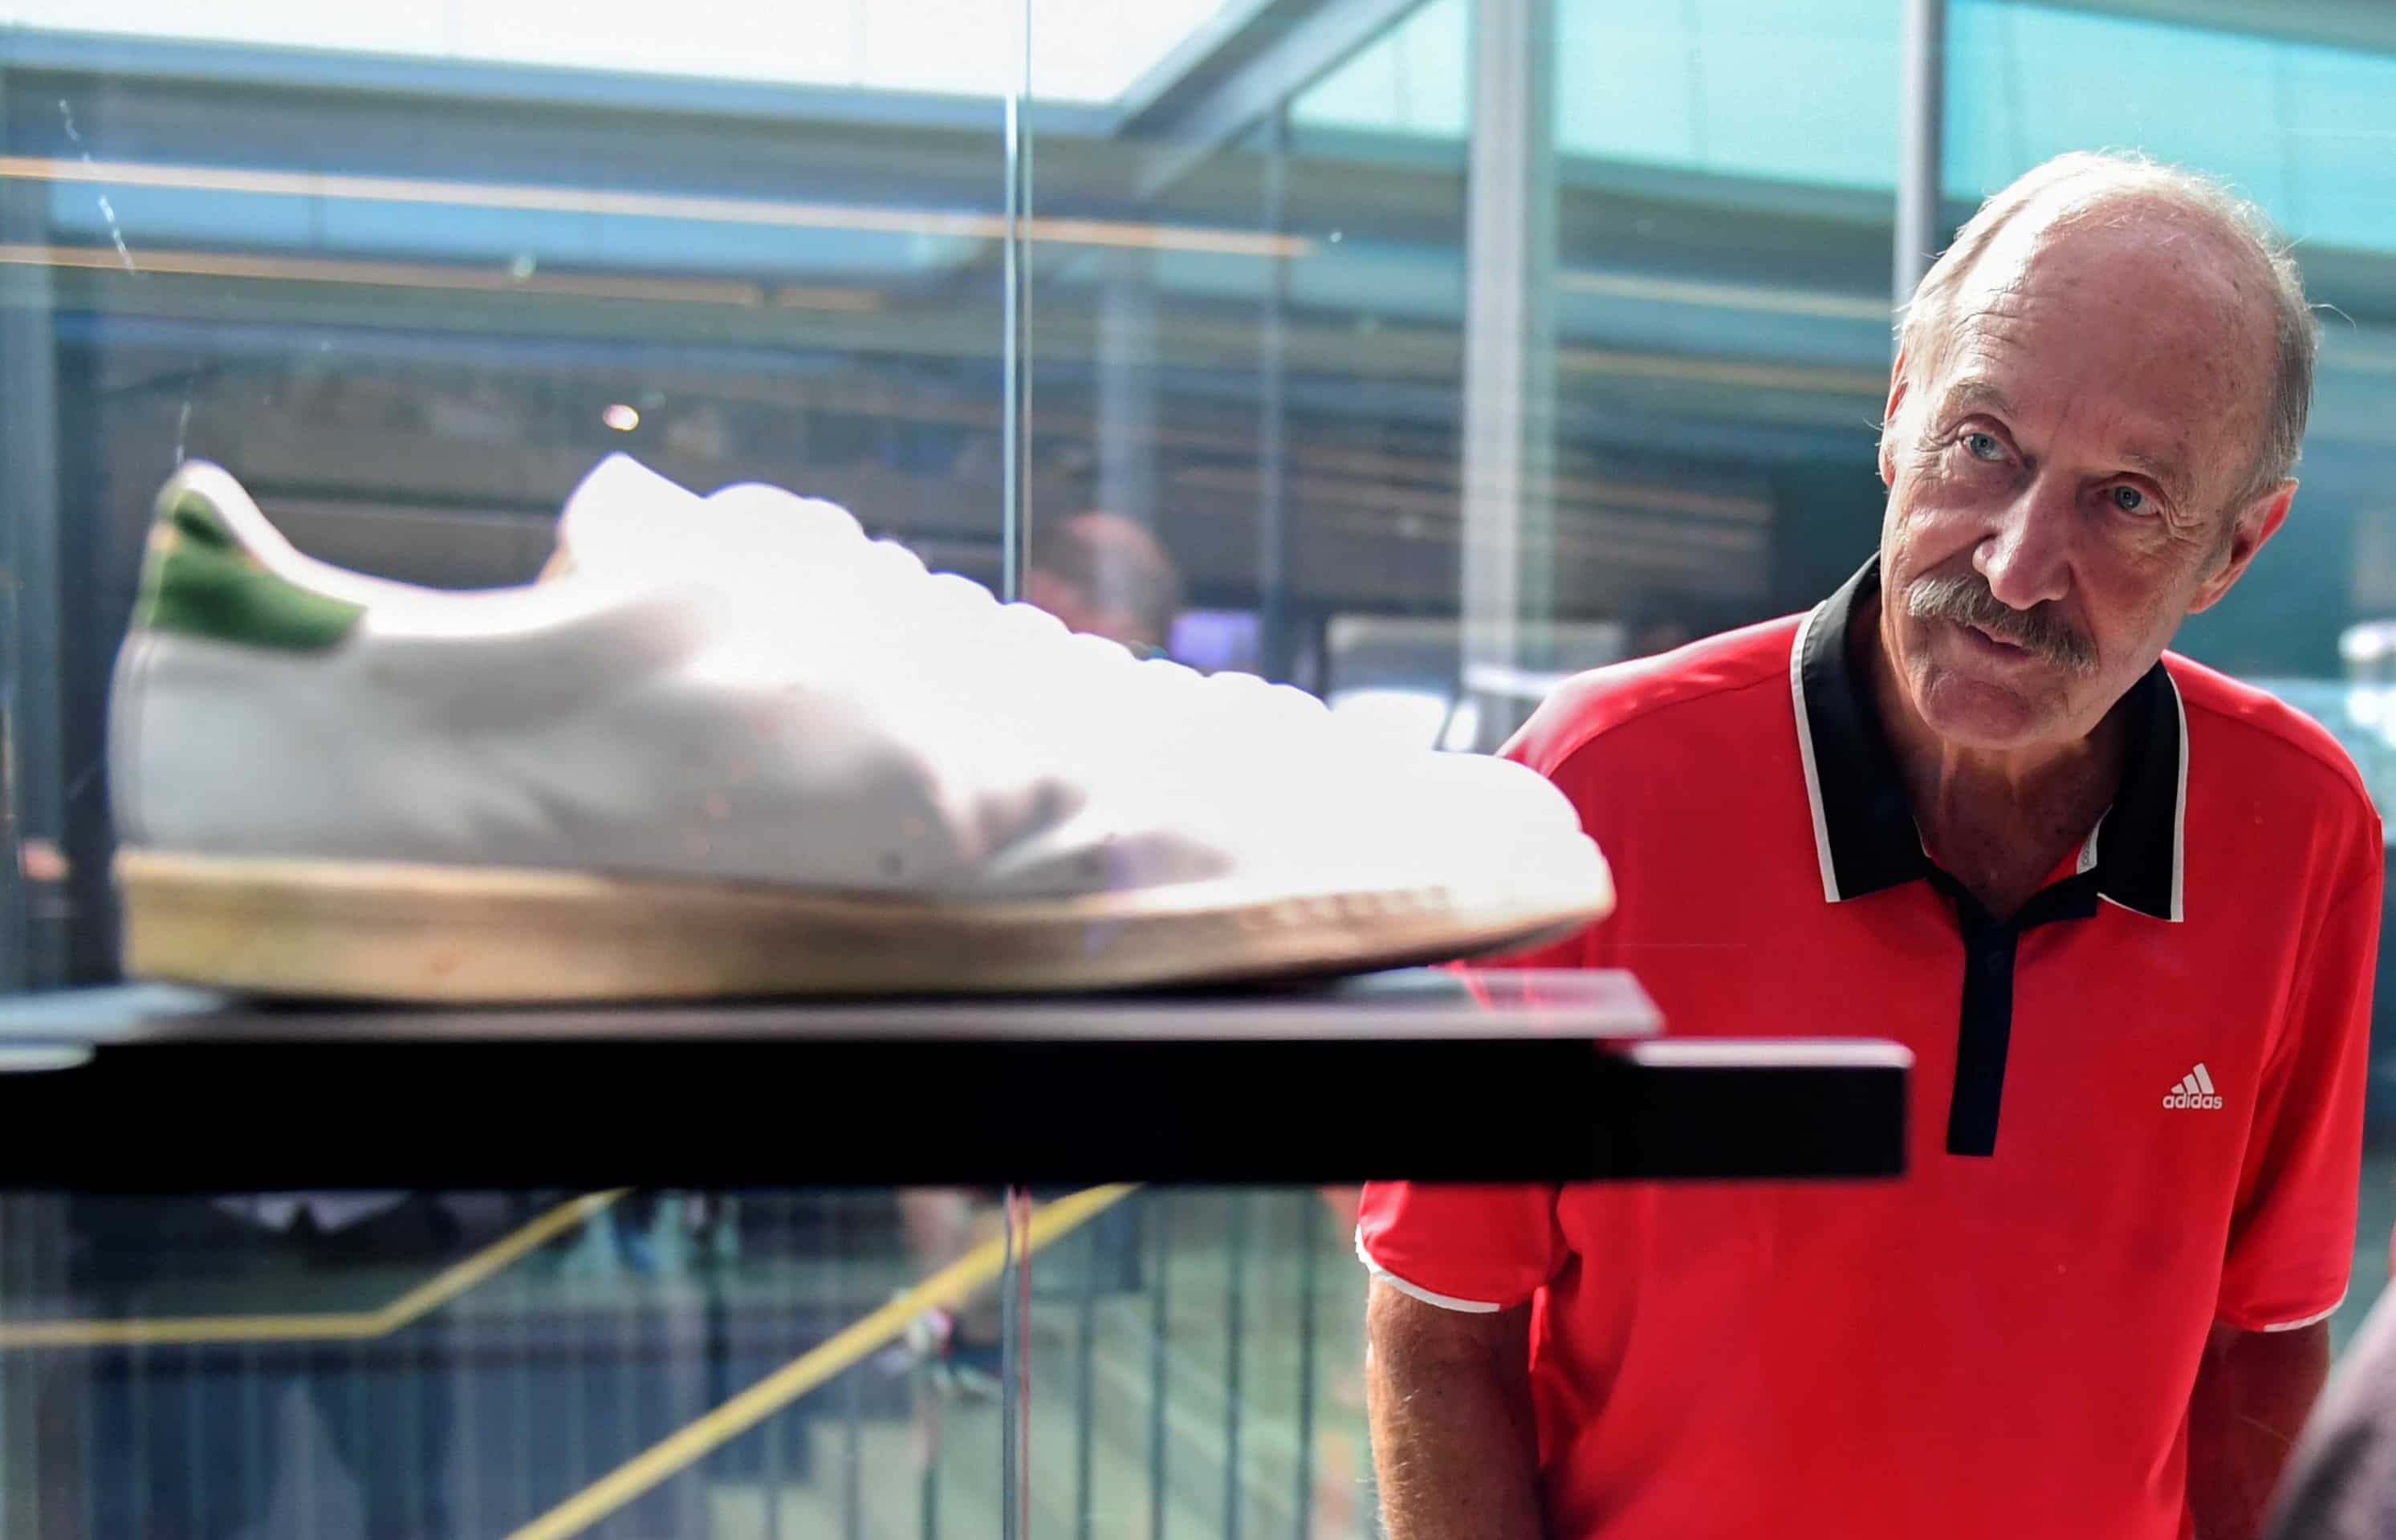 Former tennis player Stan Smith looks at his shoe as he attends the celebrations for German sports apparel maker Adidas' 70th anniversary at the company's history exhibition in Herzogenaurach, Germany. (Reuters)